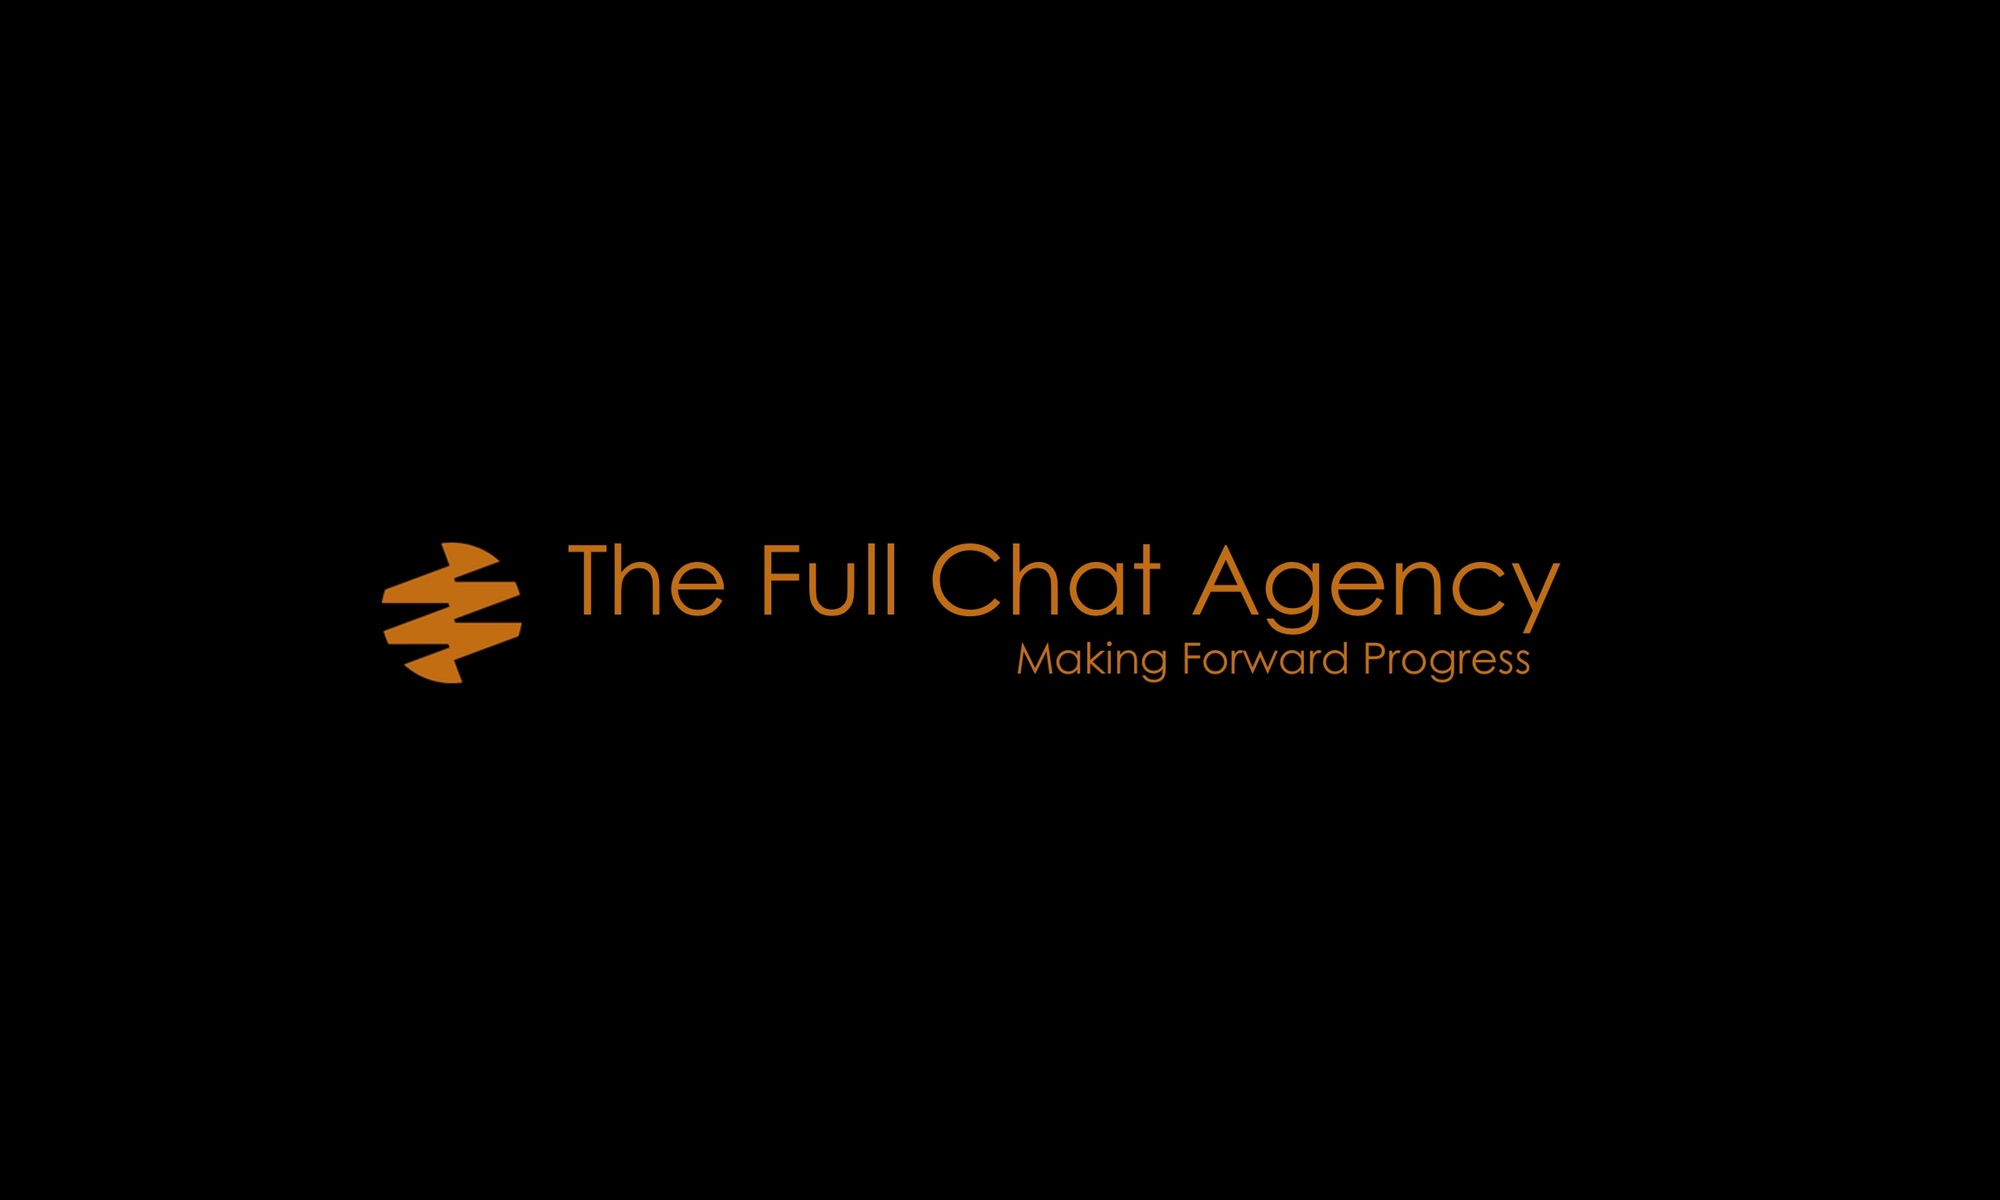 agency chatrooms Urbanchatroom is a new location based information and communication platform.